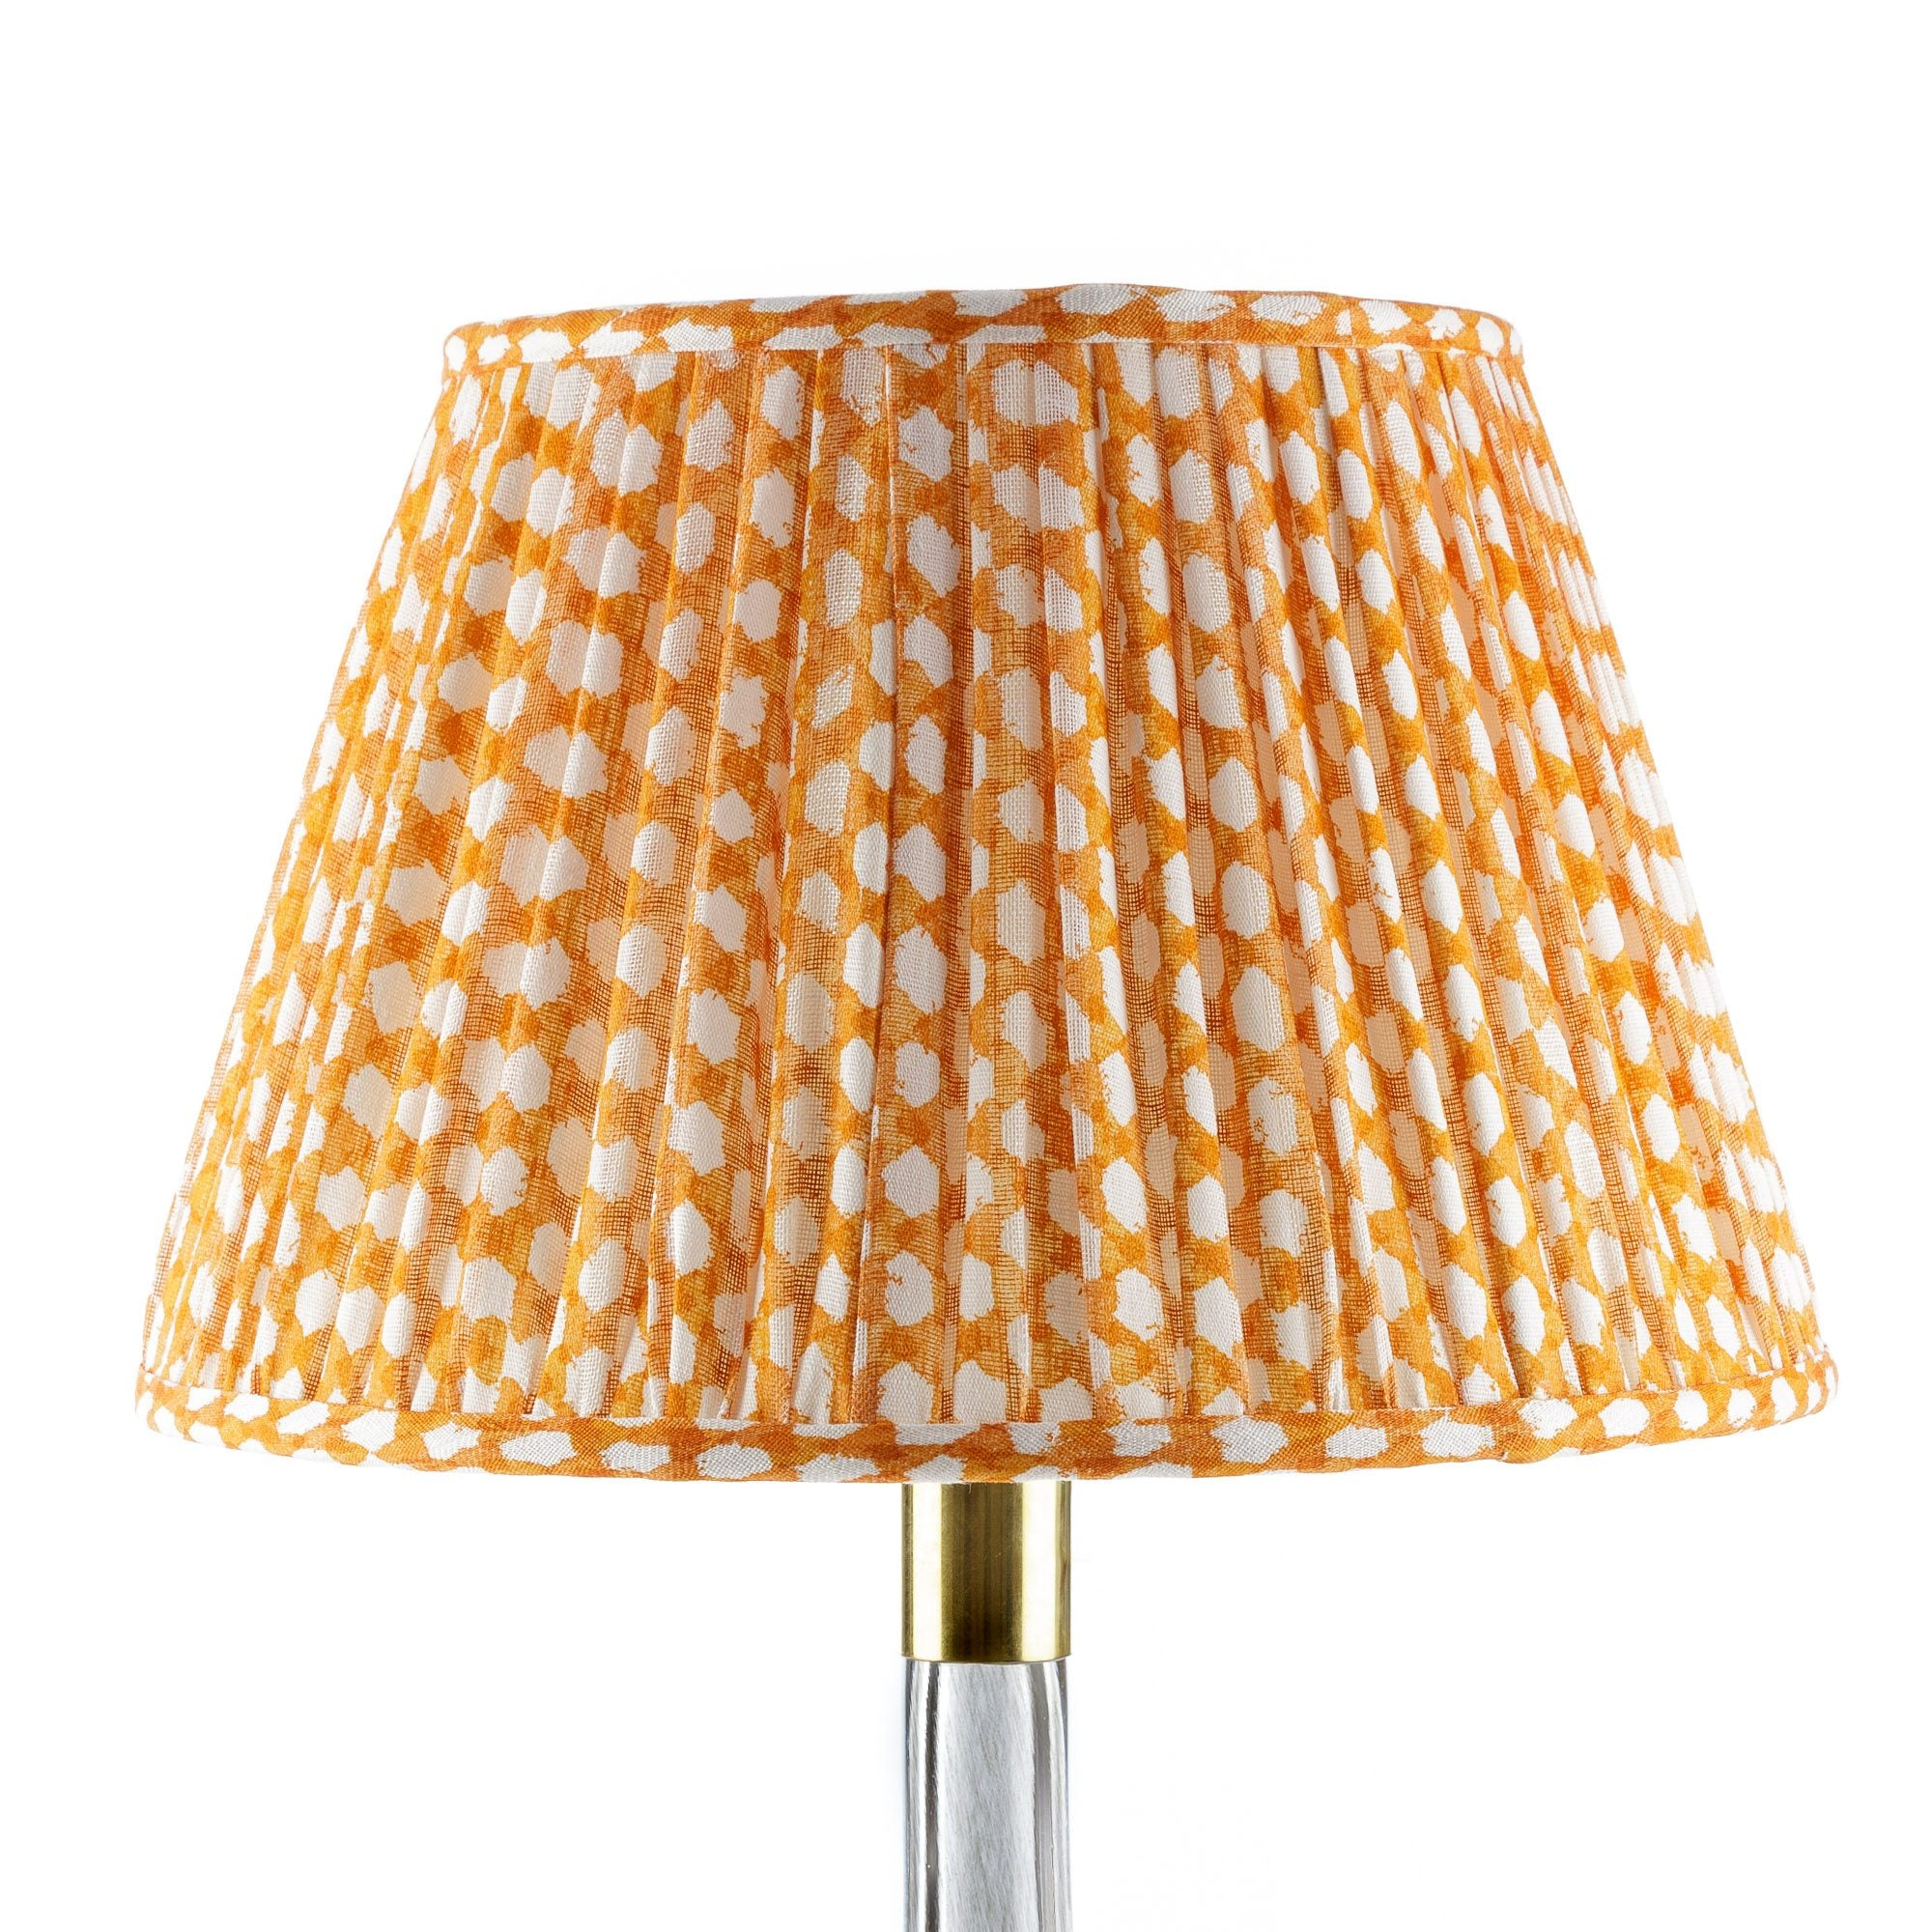 Fermoie Lampshade in Orange Wicker